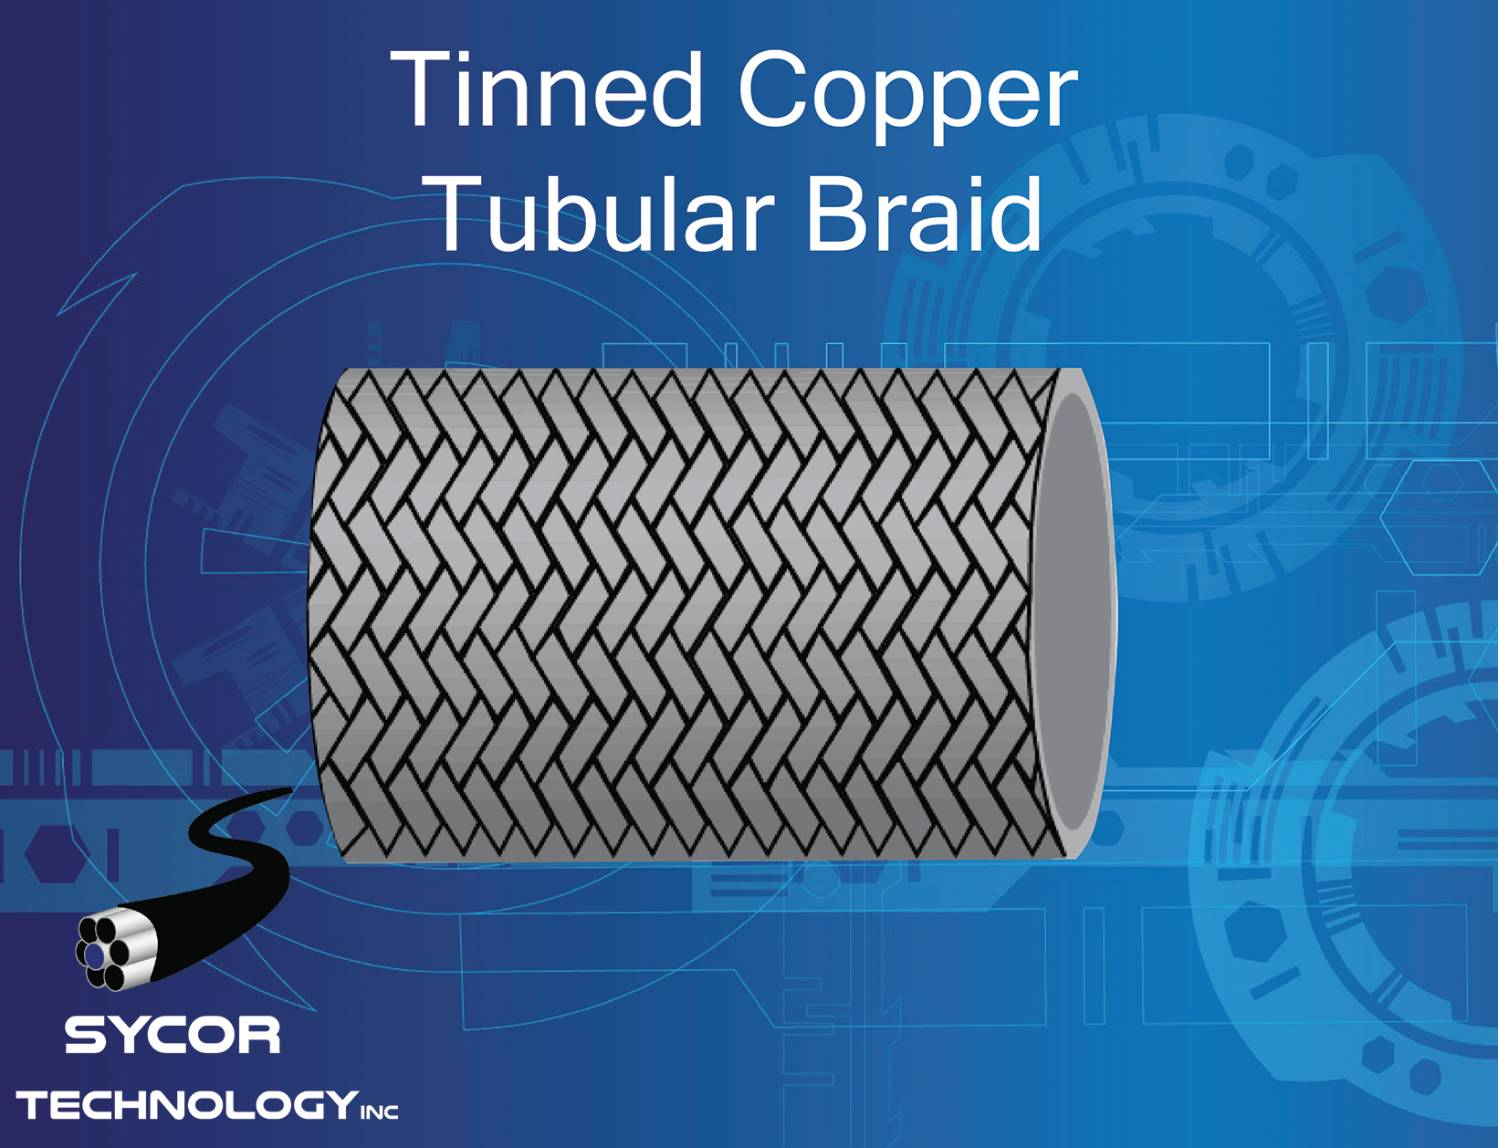 Tinned Copper Tubular Braid